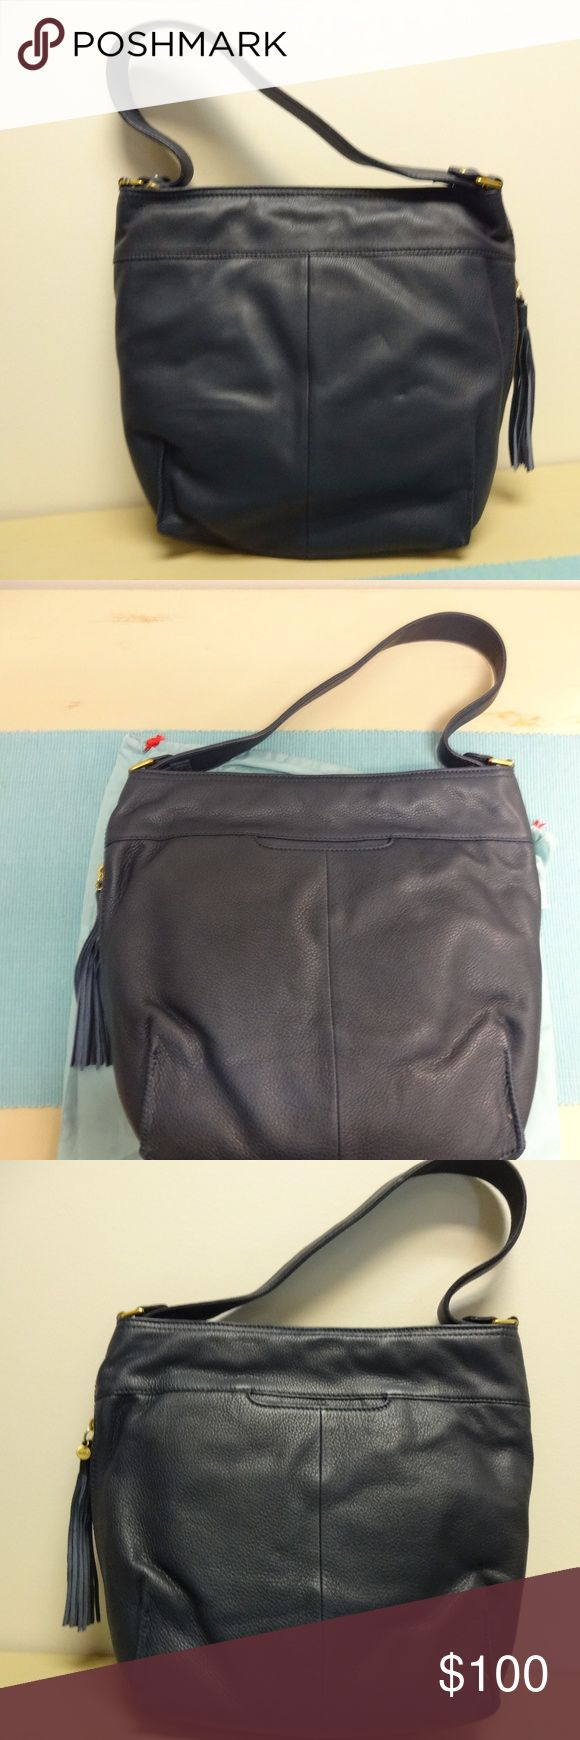 Hobo Women's Raven Navy shoulder Bag New in package  2 Interior pockets  Soft Leather HOBO Bags Hobos